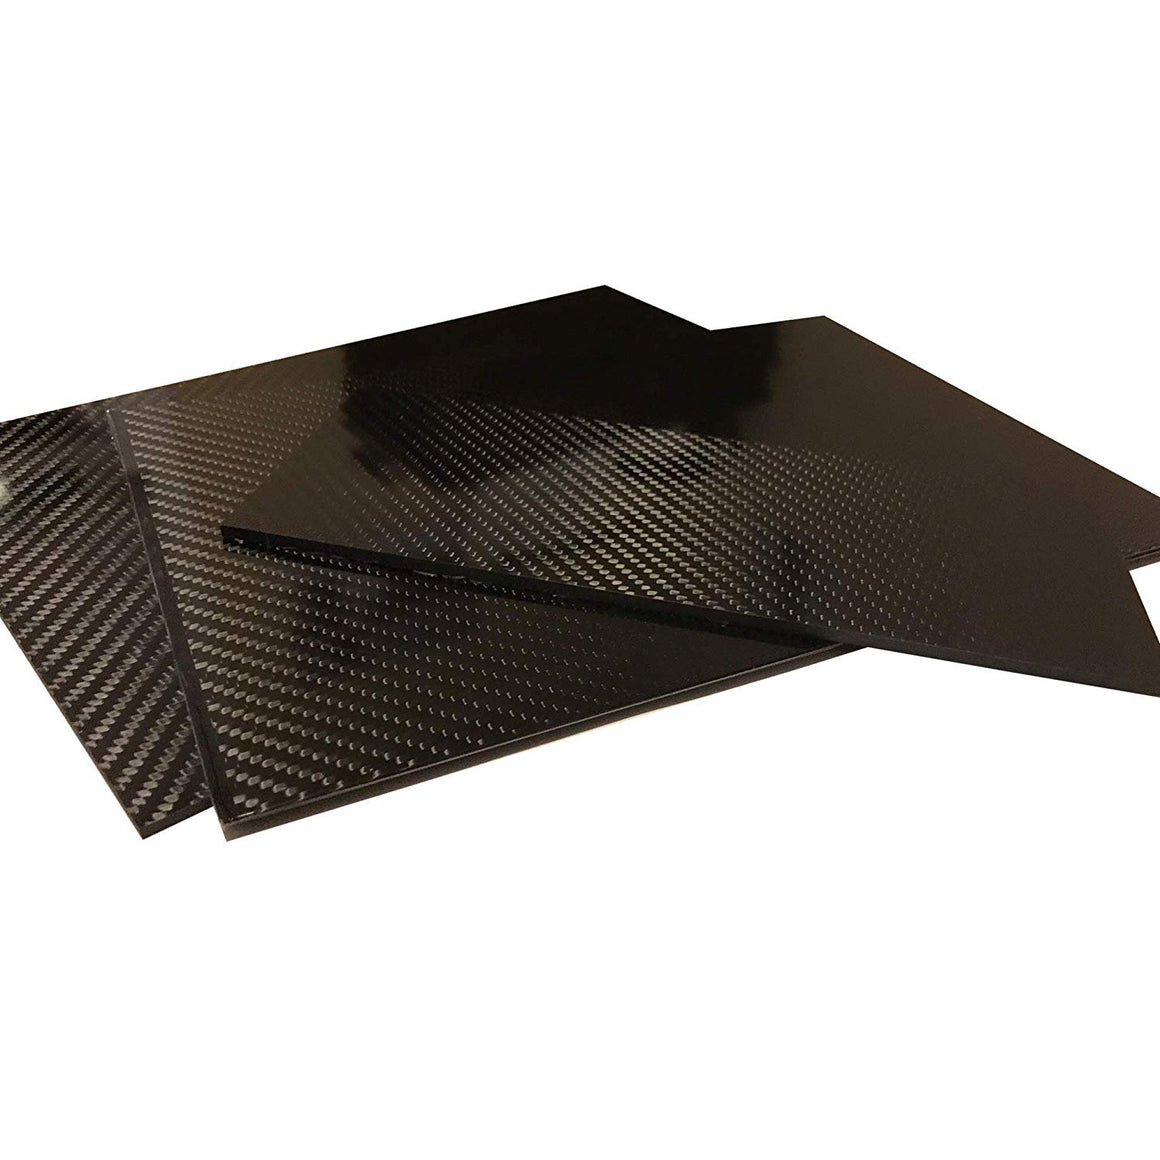 (2) Carbon Fiber Plate - 100mm x 250mm x 1mm Thick - 100% -3K Tow, Plain Weave -High Gloss Surface (1) Plate